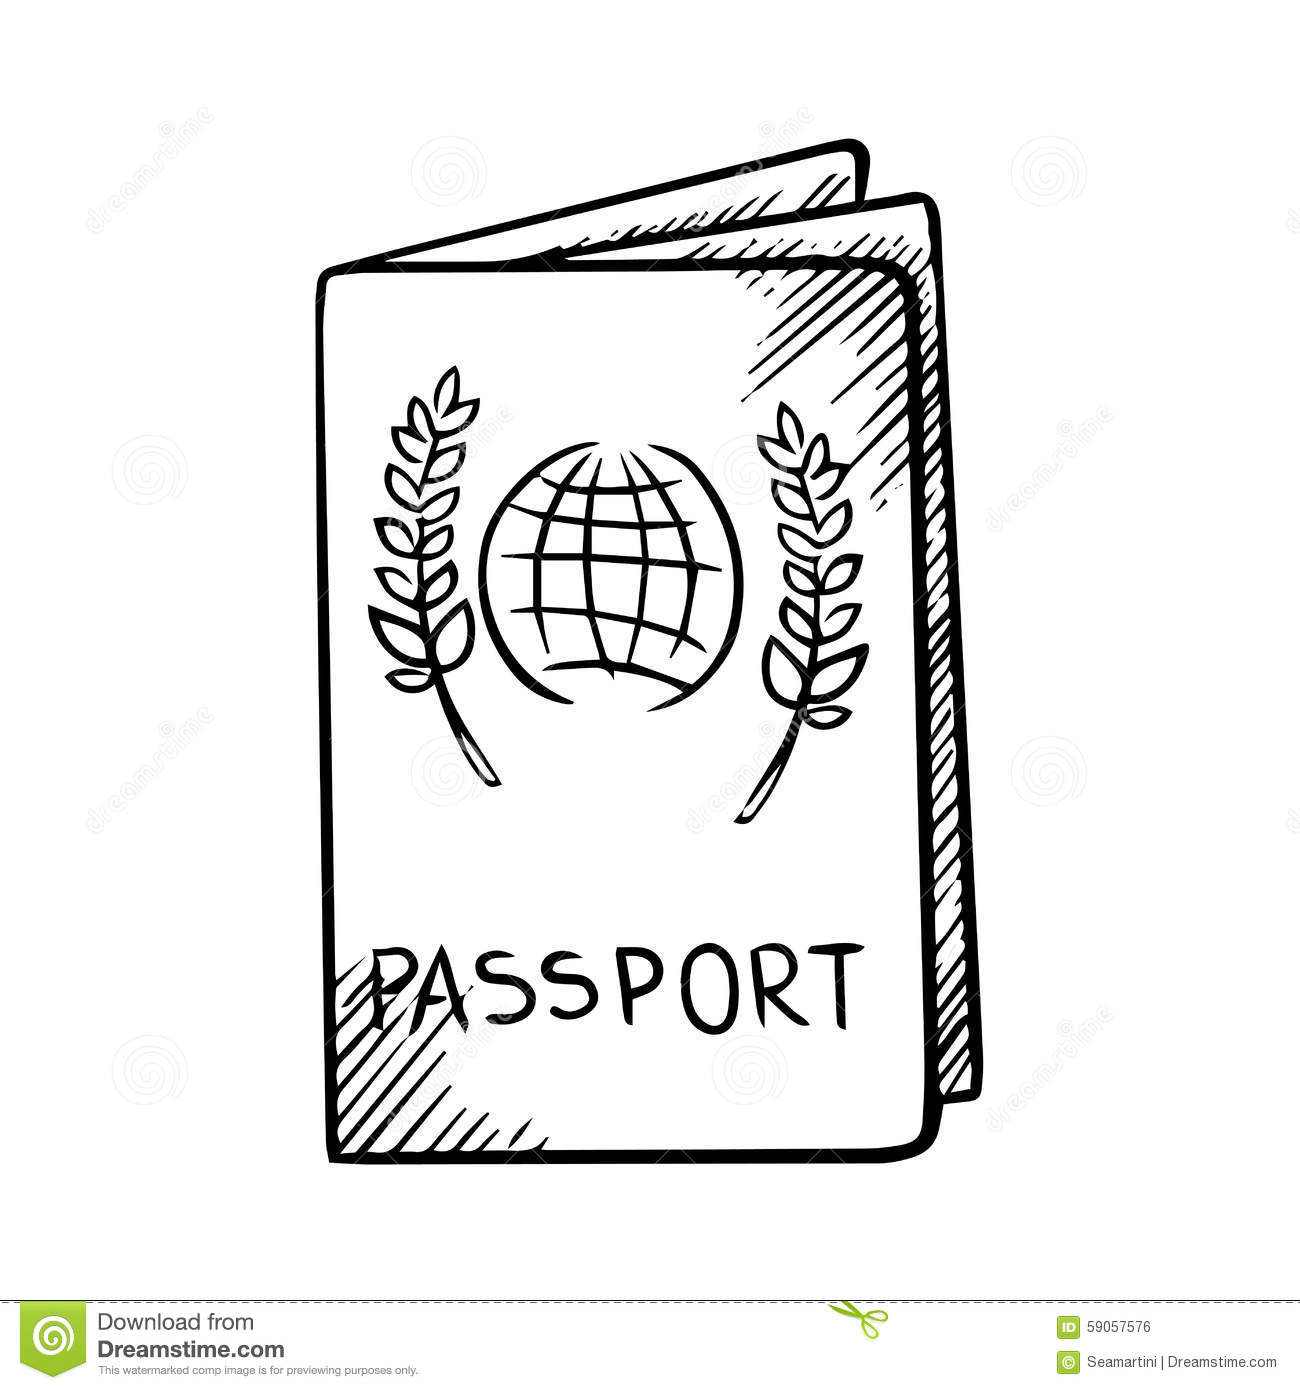 Passport Sketch With Globe On Cover Stock Vector ...